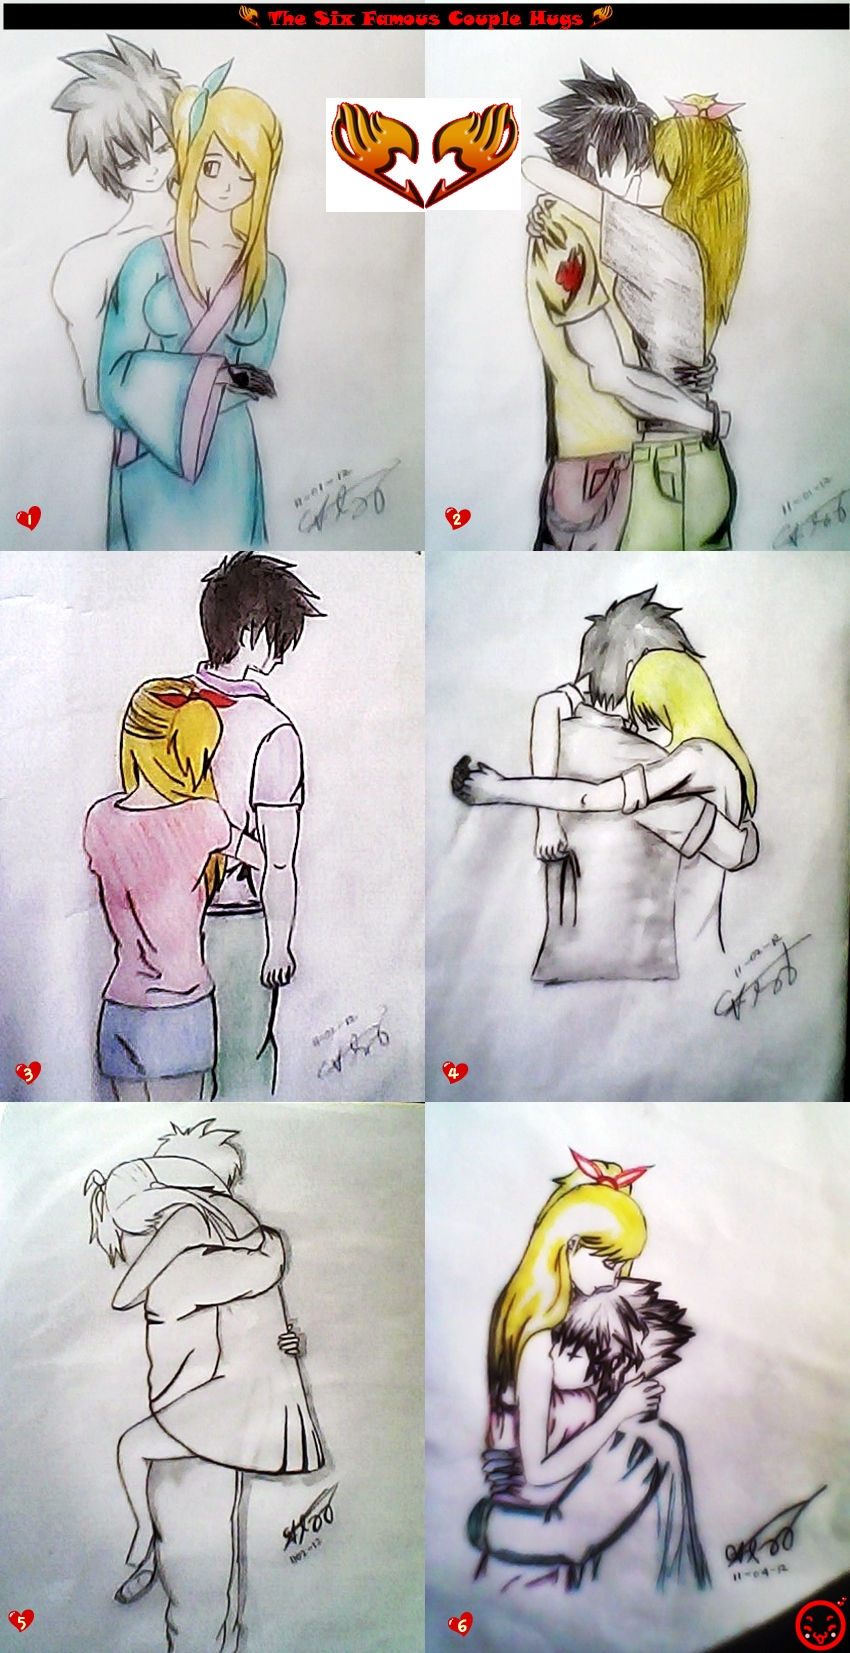 Cute relationship drawing ideas the for Cute drawing ideas